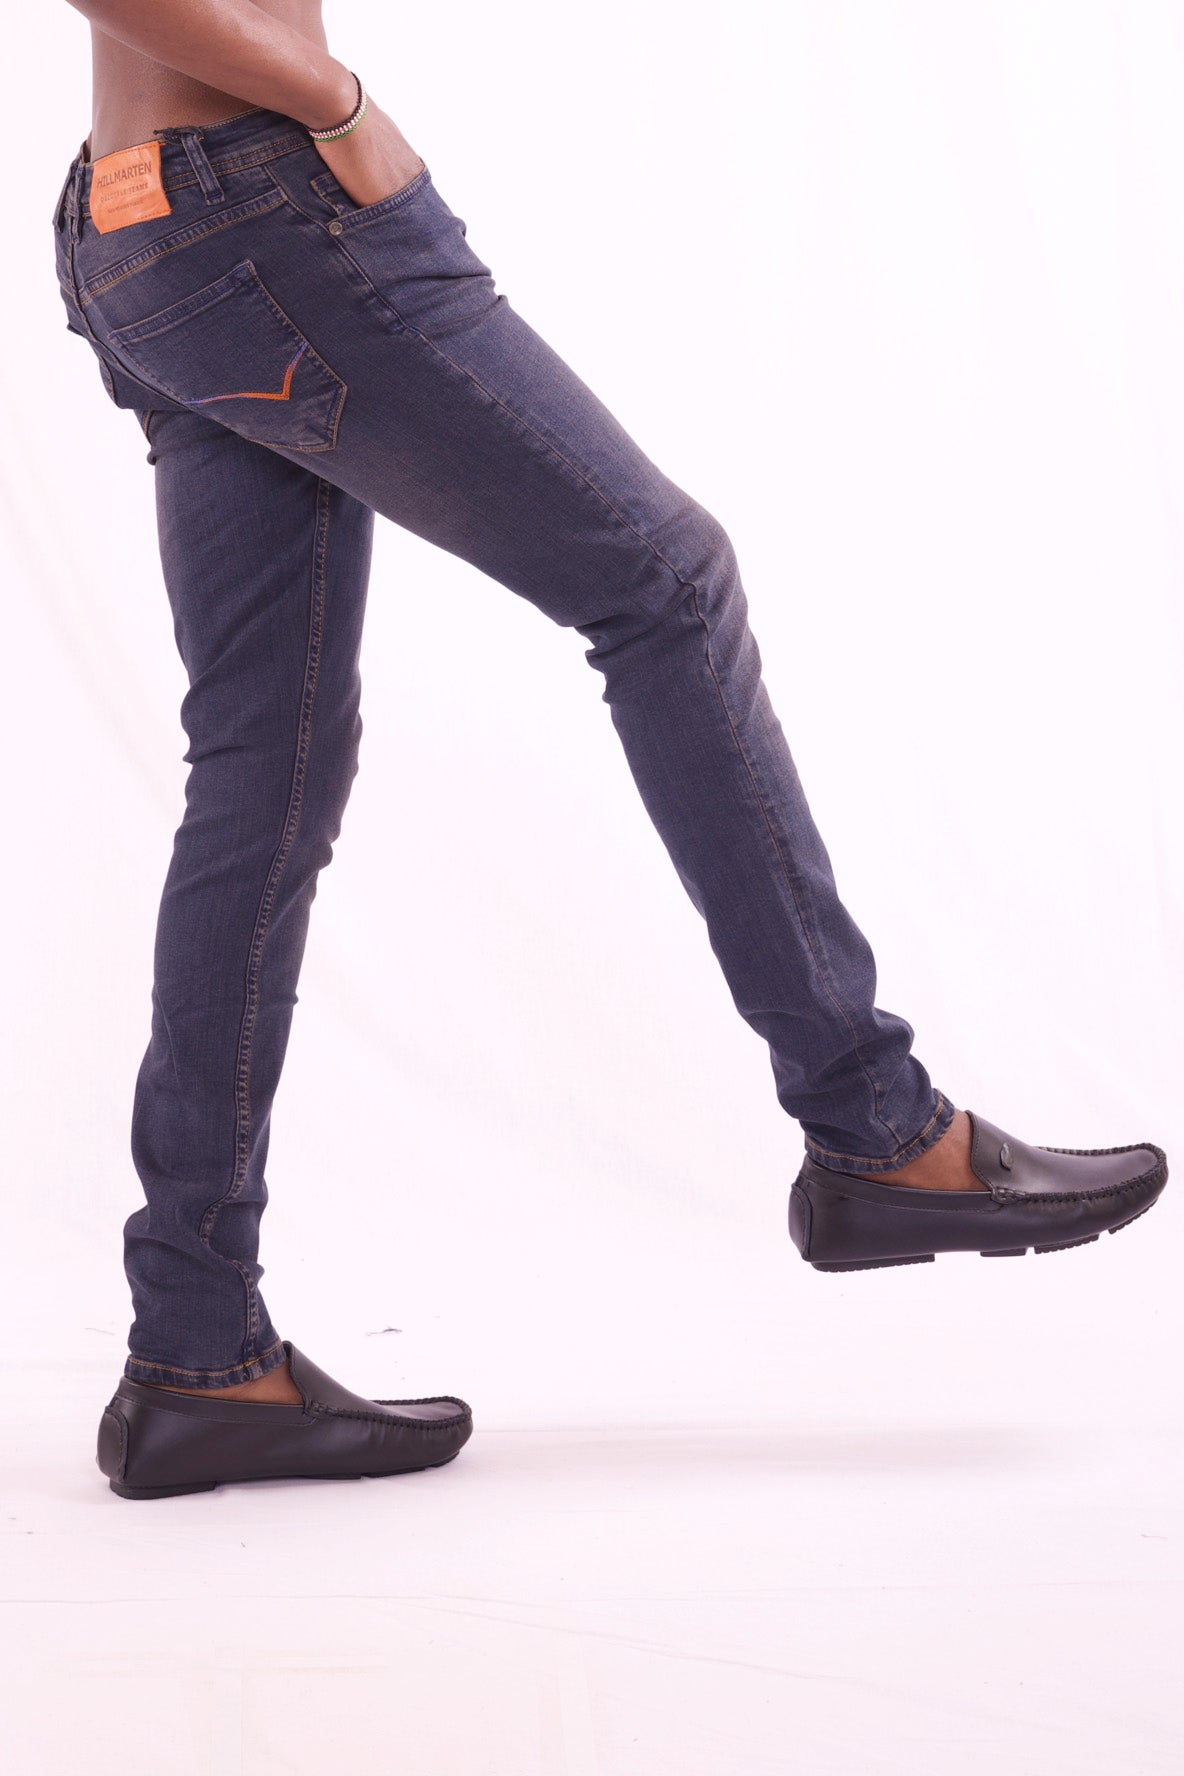 Men's Slim Fit Dark Blue Jeans - Hillmarten